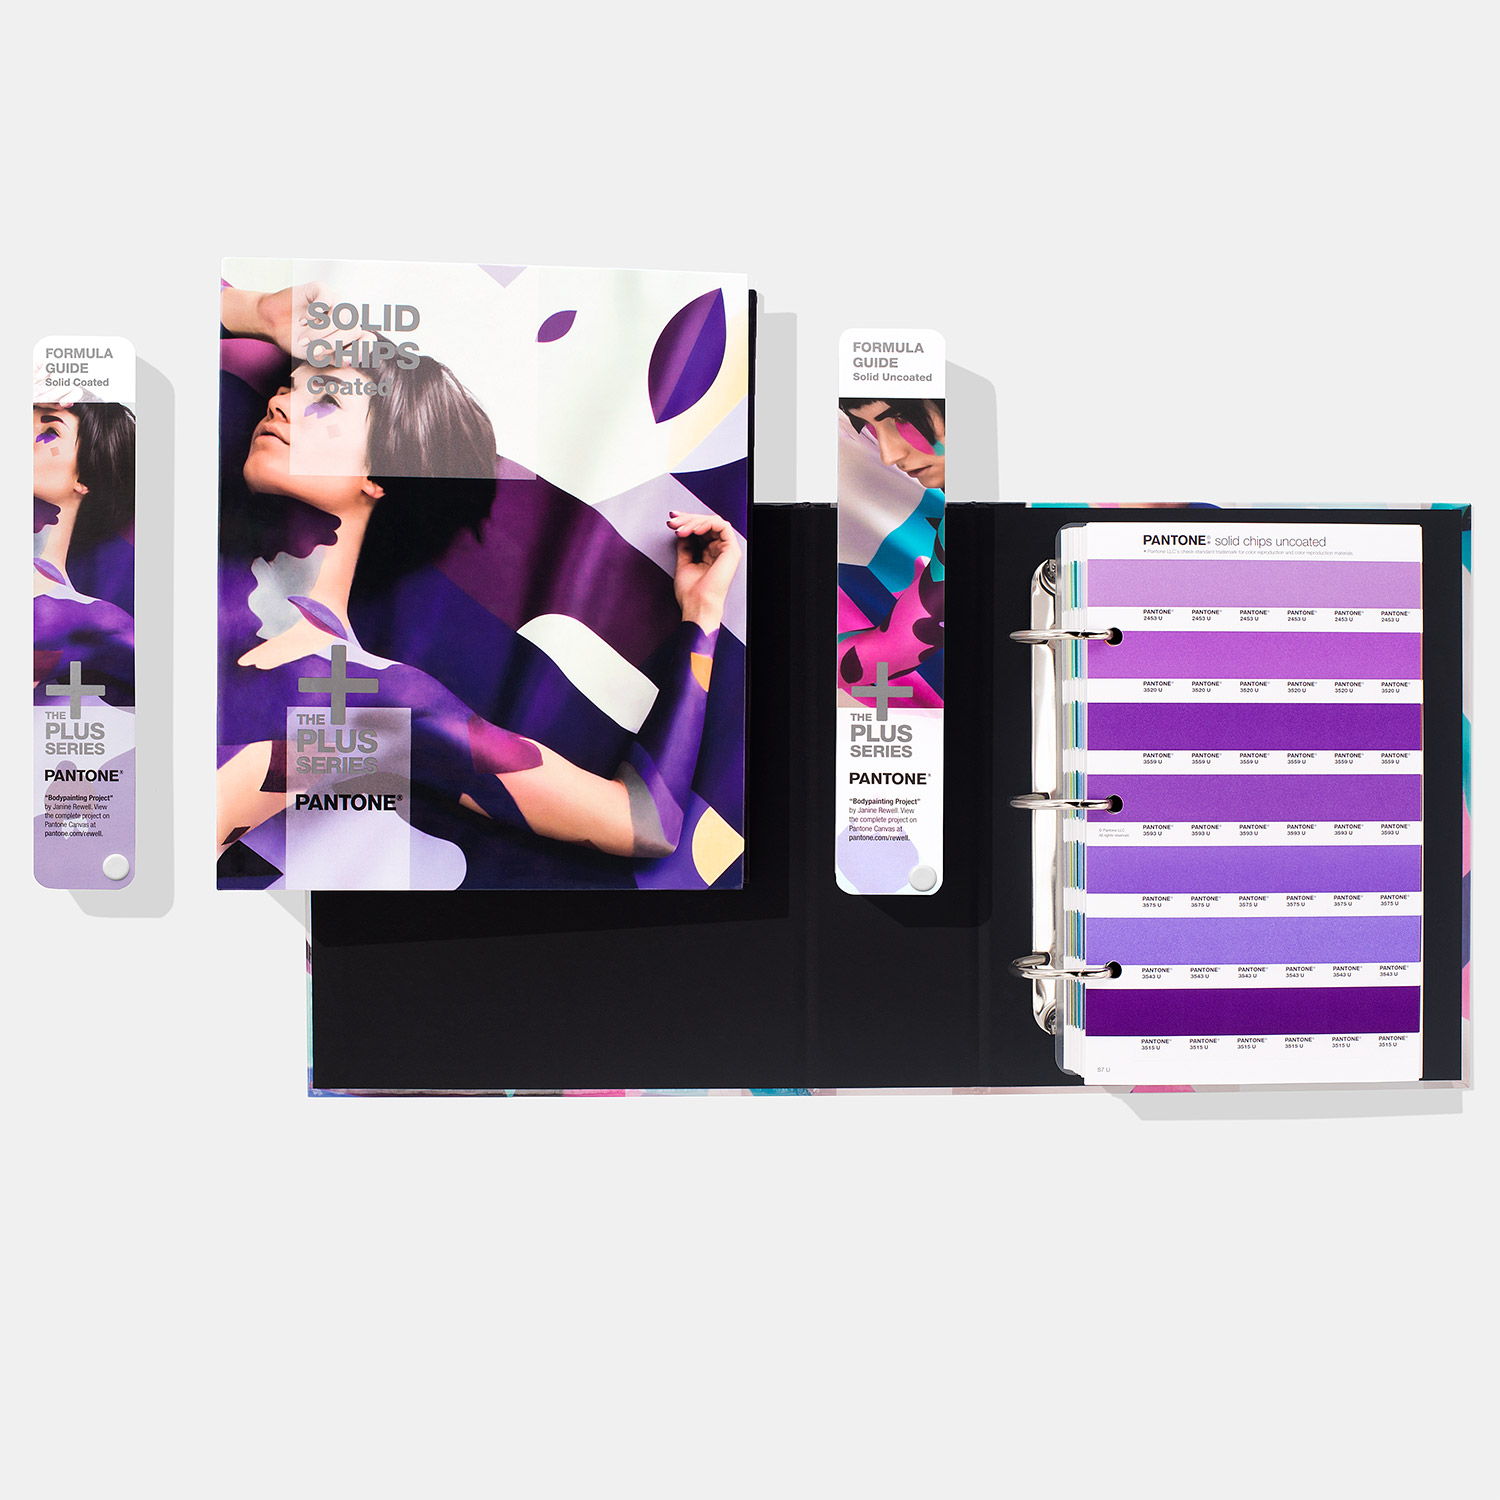 Pantone Plus Solid Color Set [Chips + Guides]